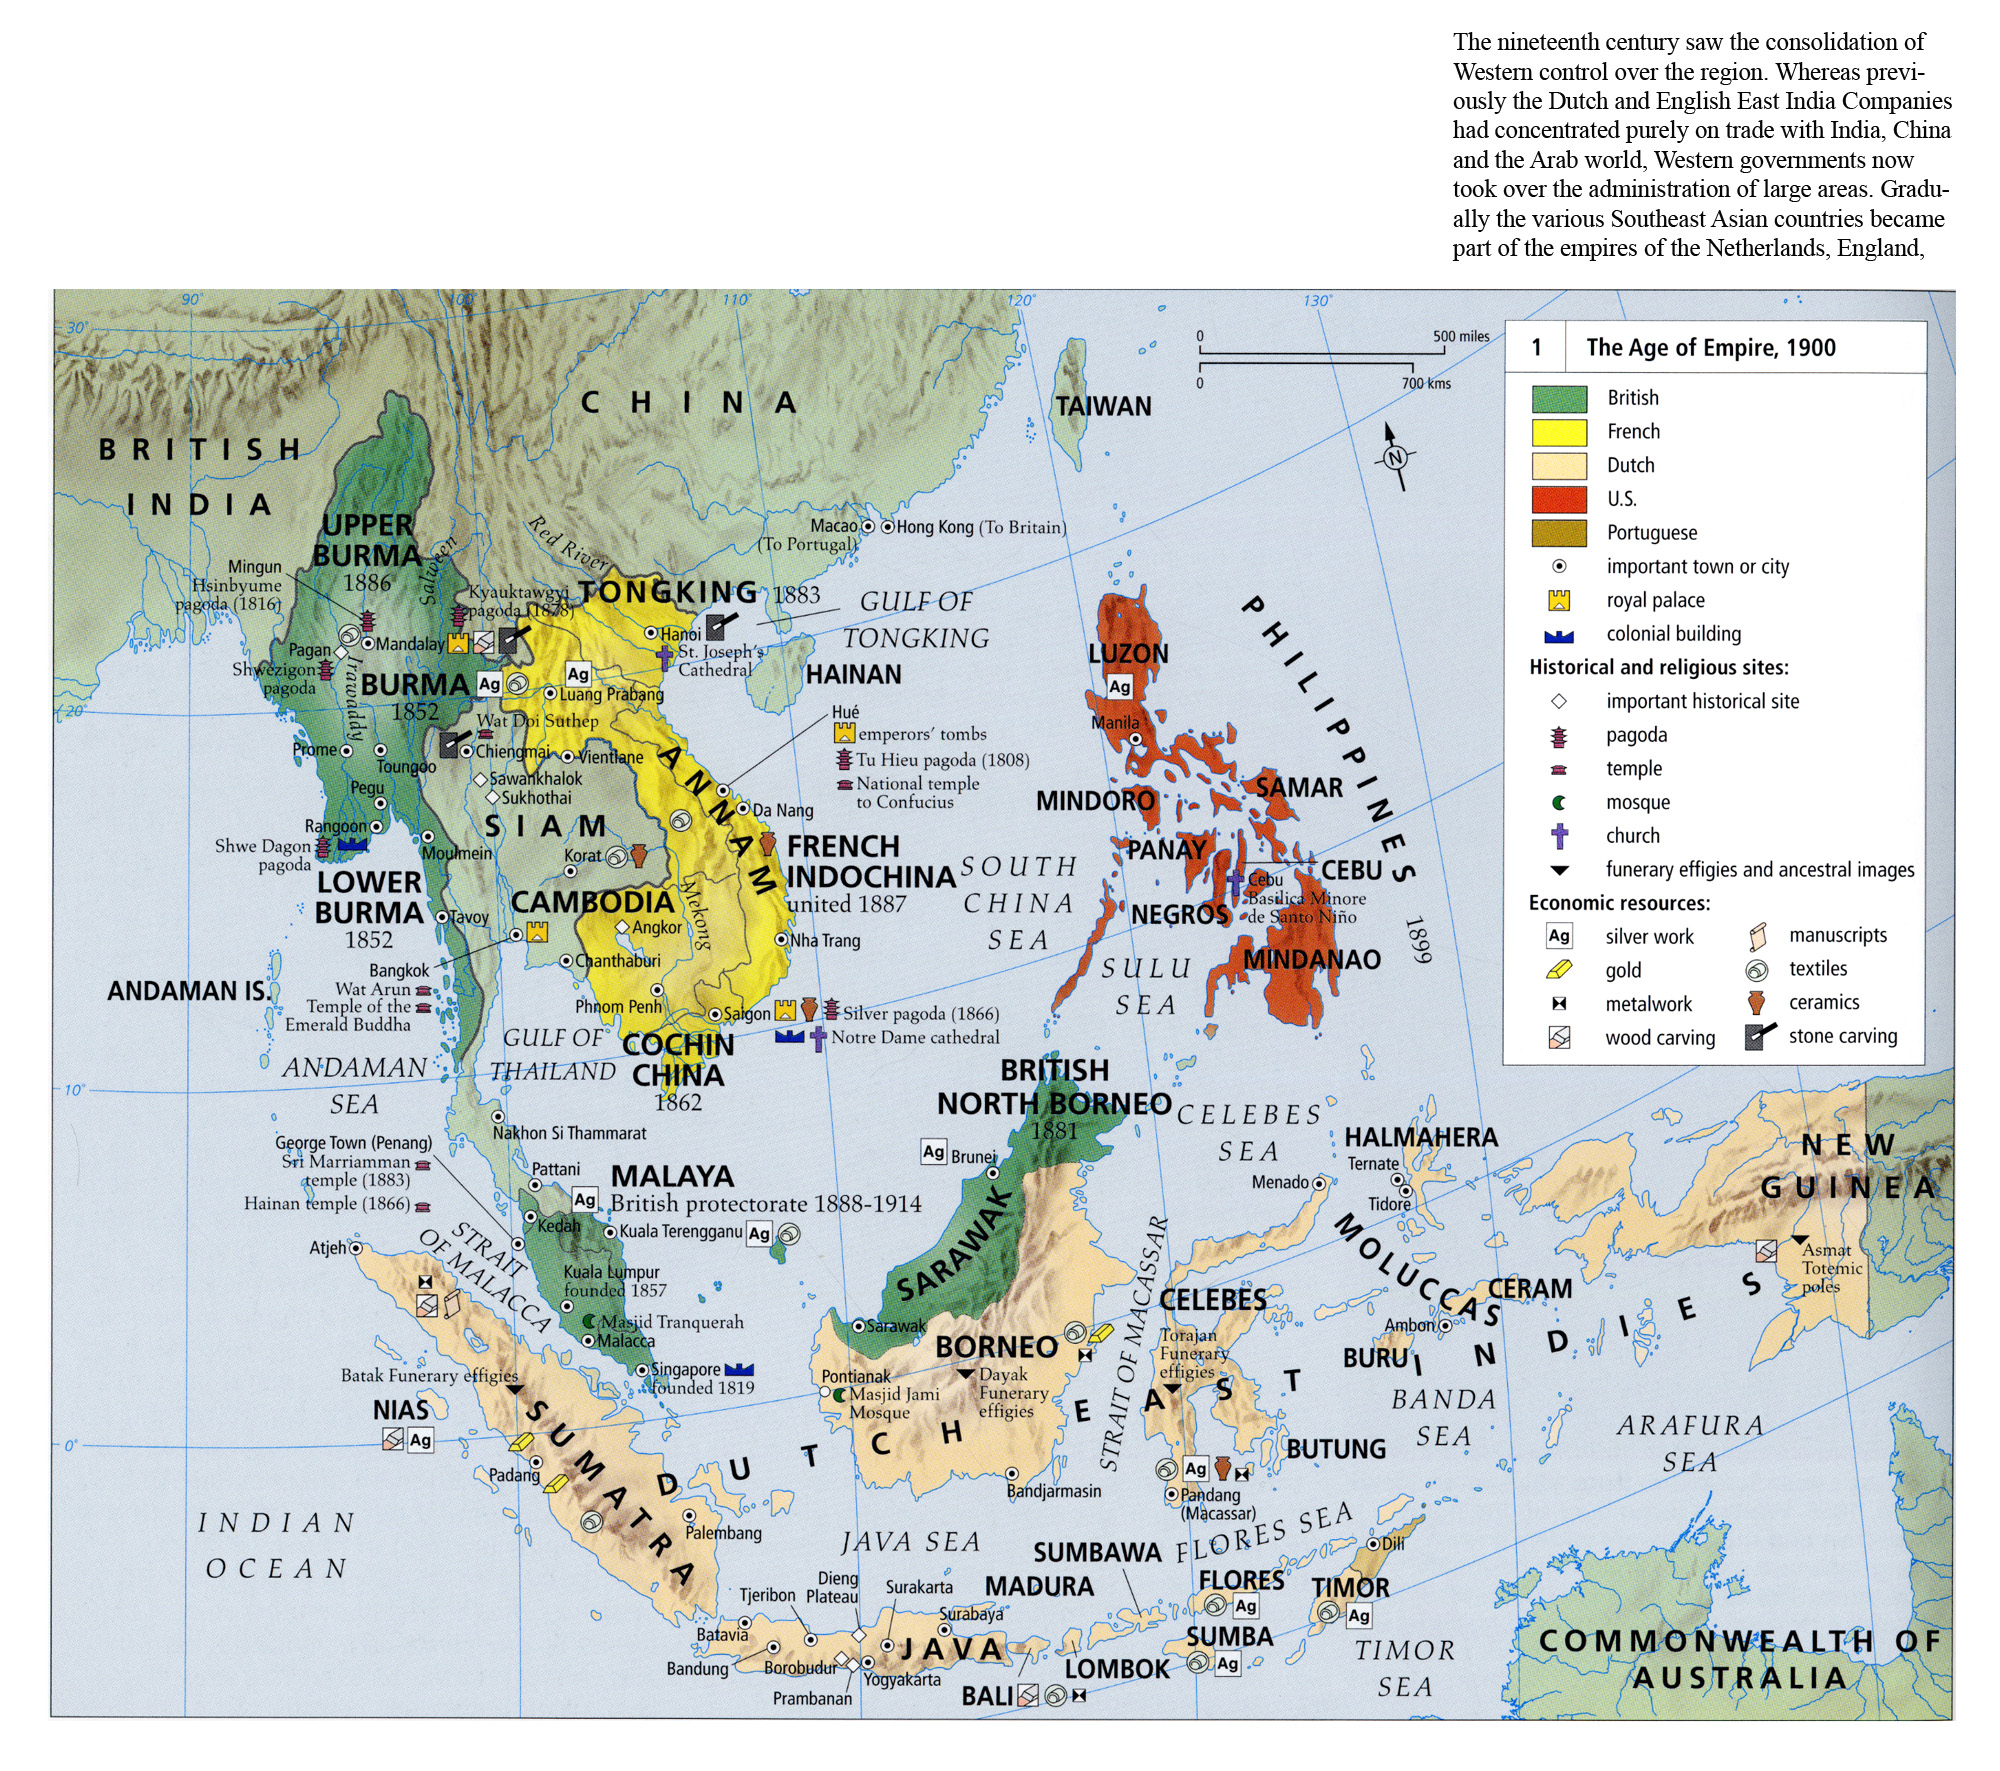 Image of: The Age Of Empire In Southeast Asia 1900 Mapping Globalization